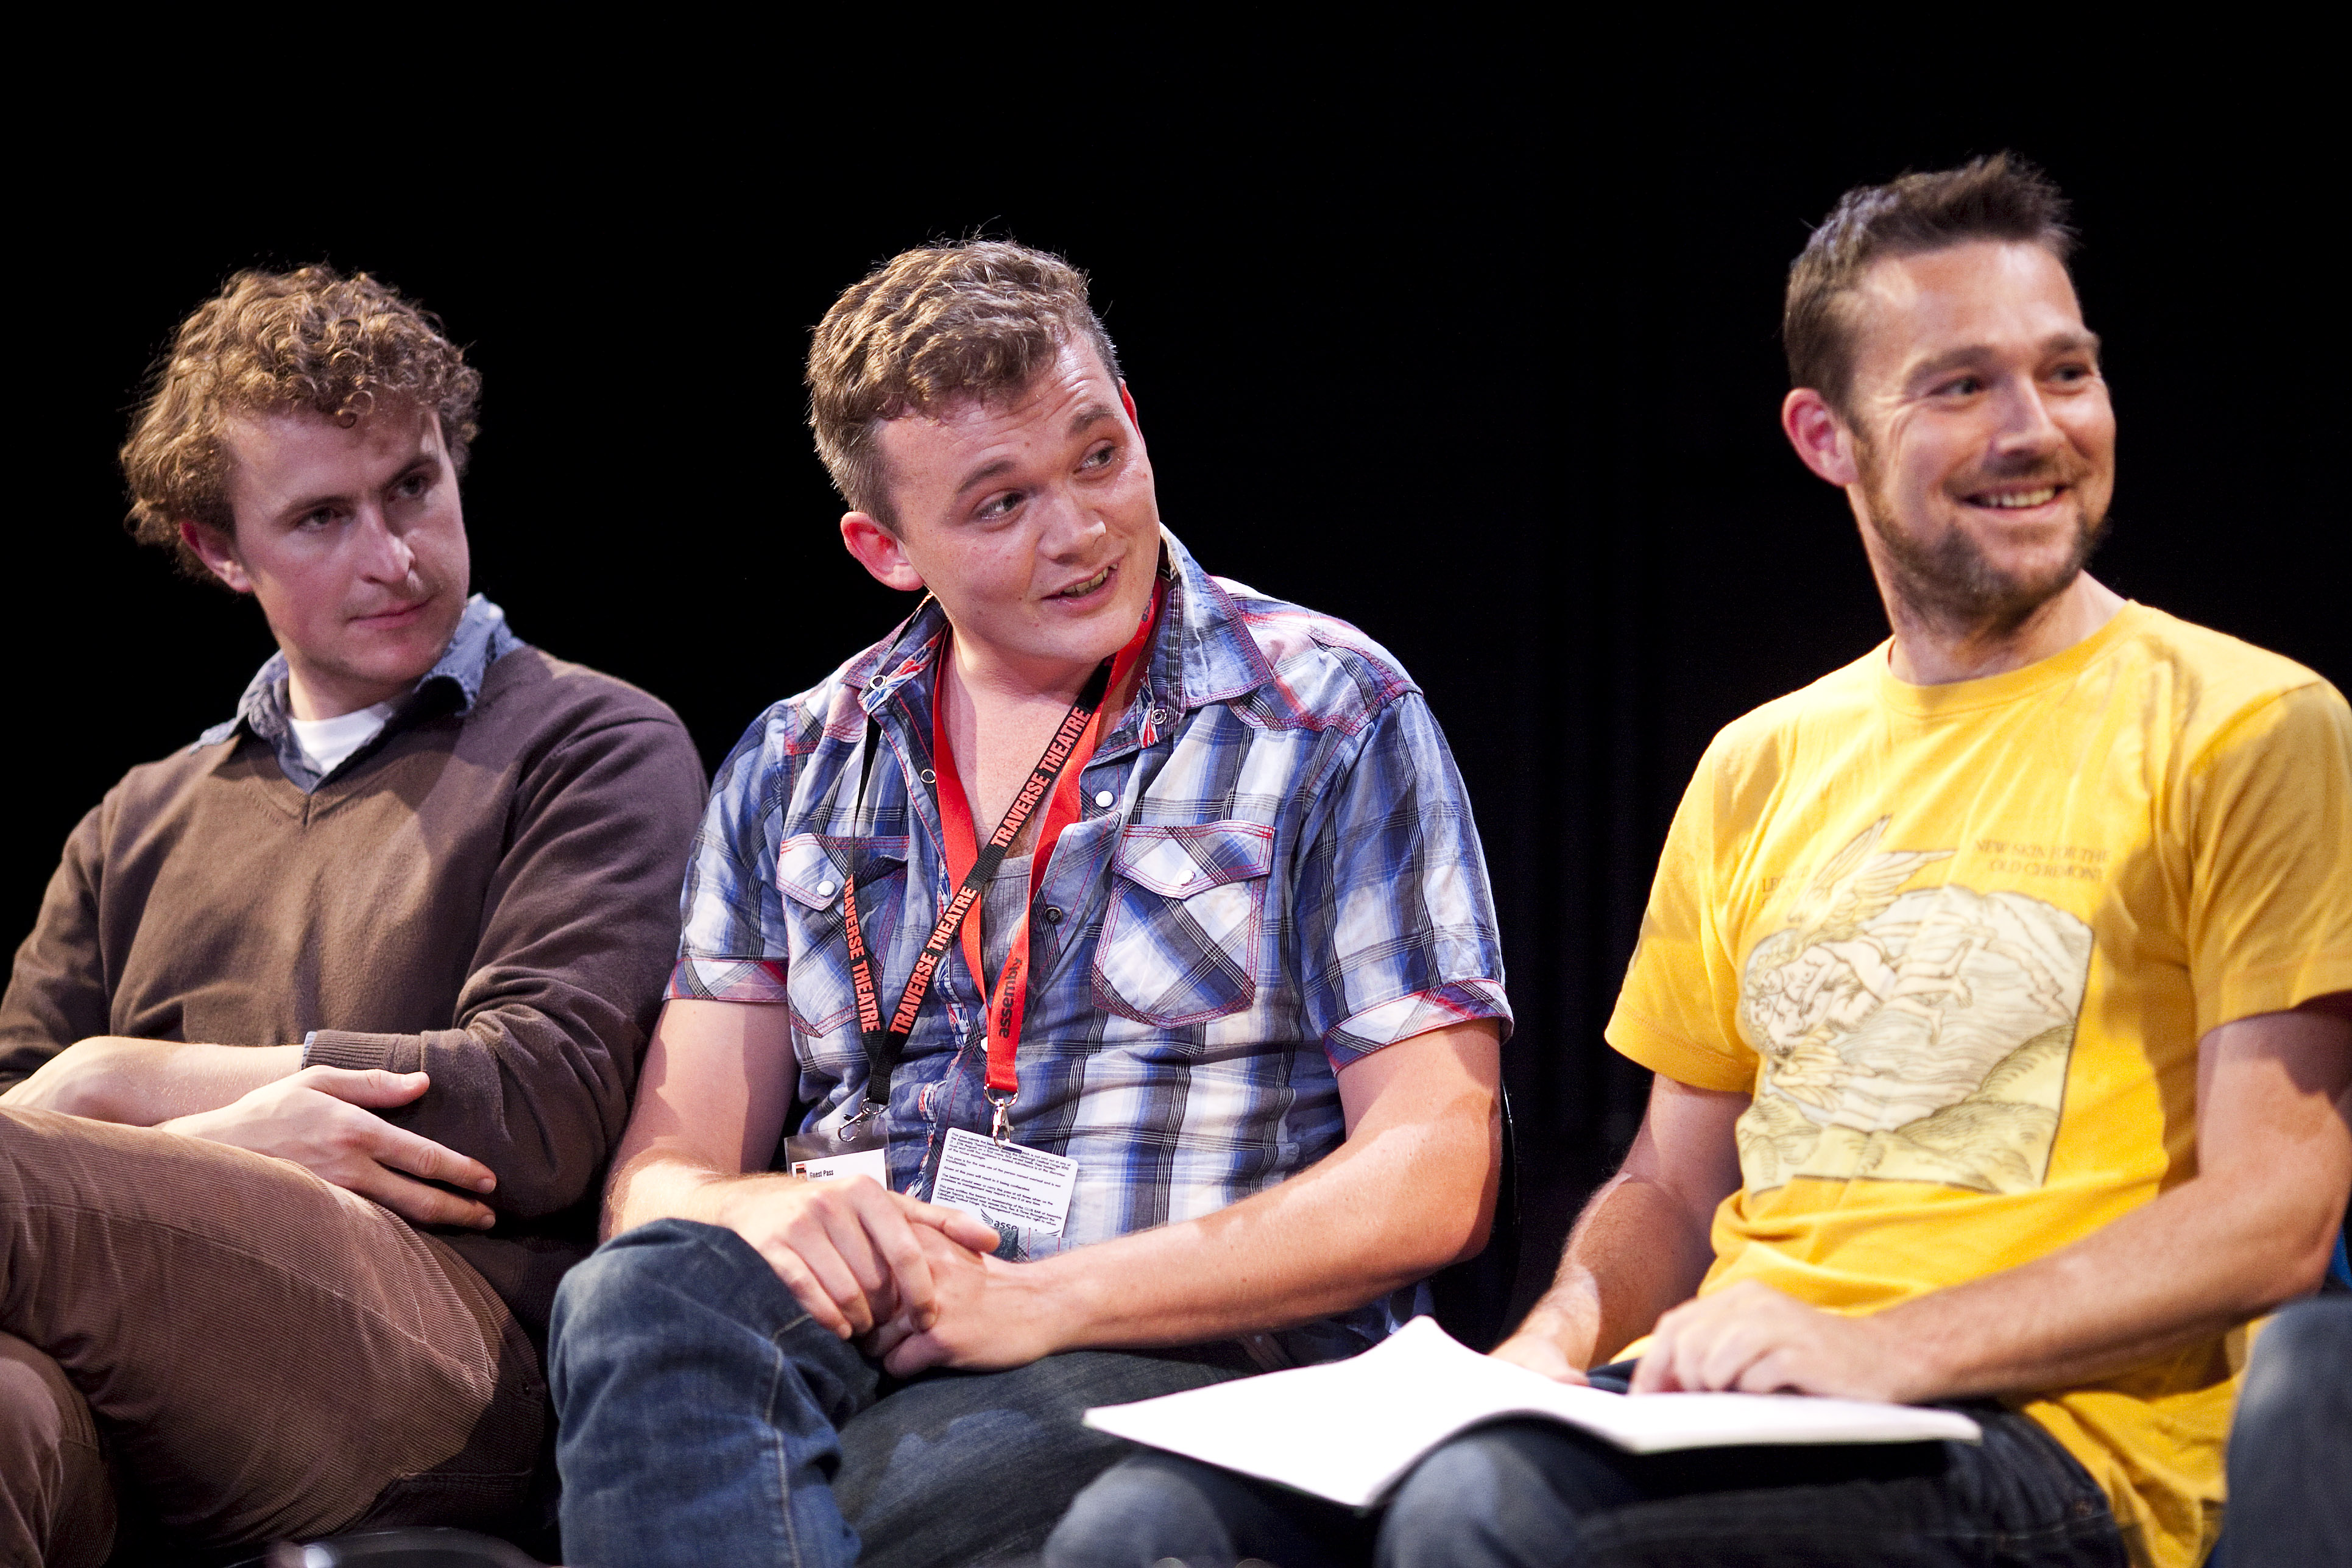 Playwrights Gary McNair and David Greig and the director Joe Douglas during Playwrights' Studio's discussion True Stories at the Traverse Theatre in August 2012. Photographer: Eoin Carey